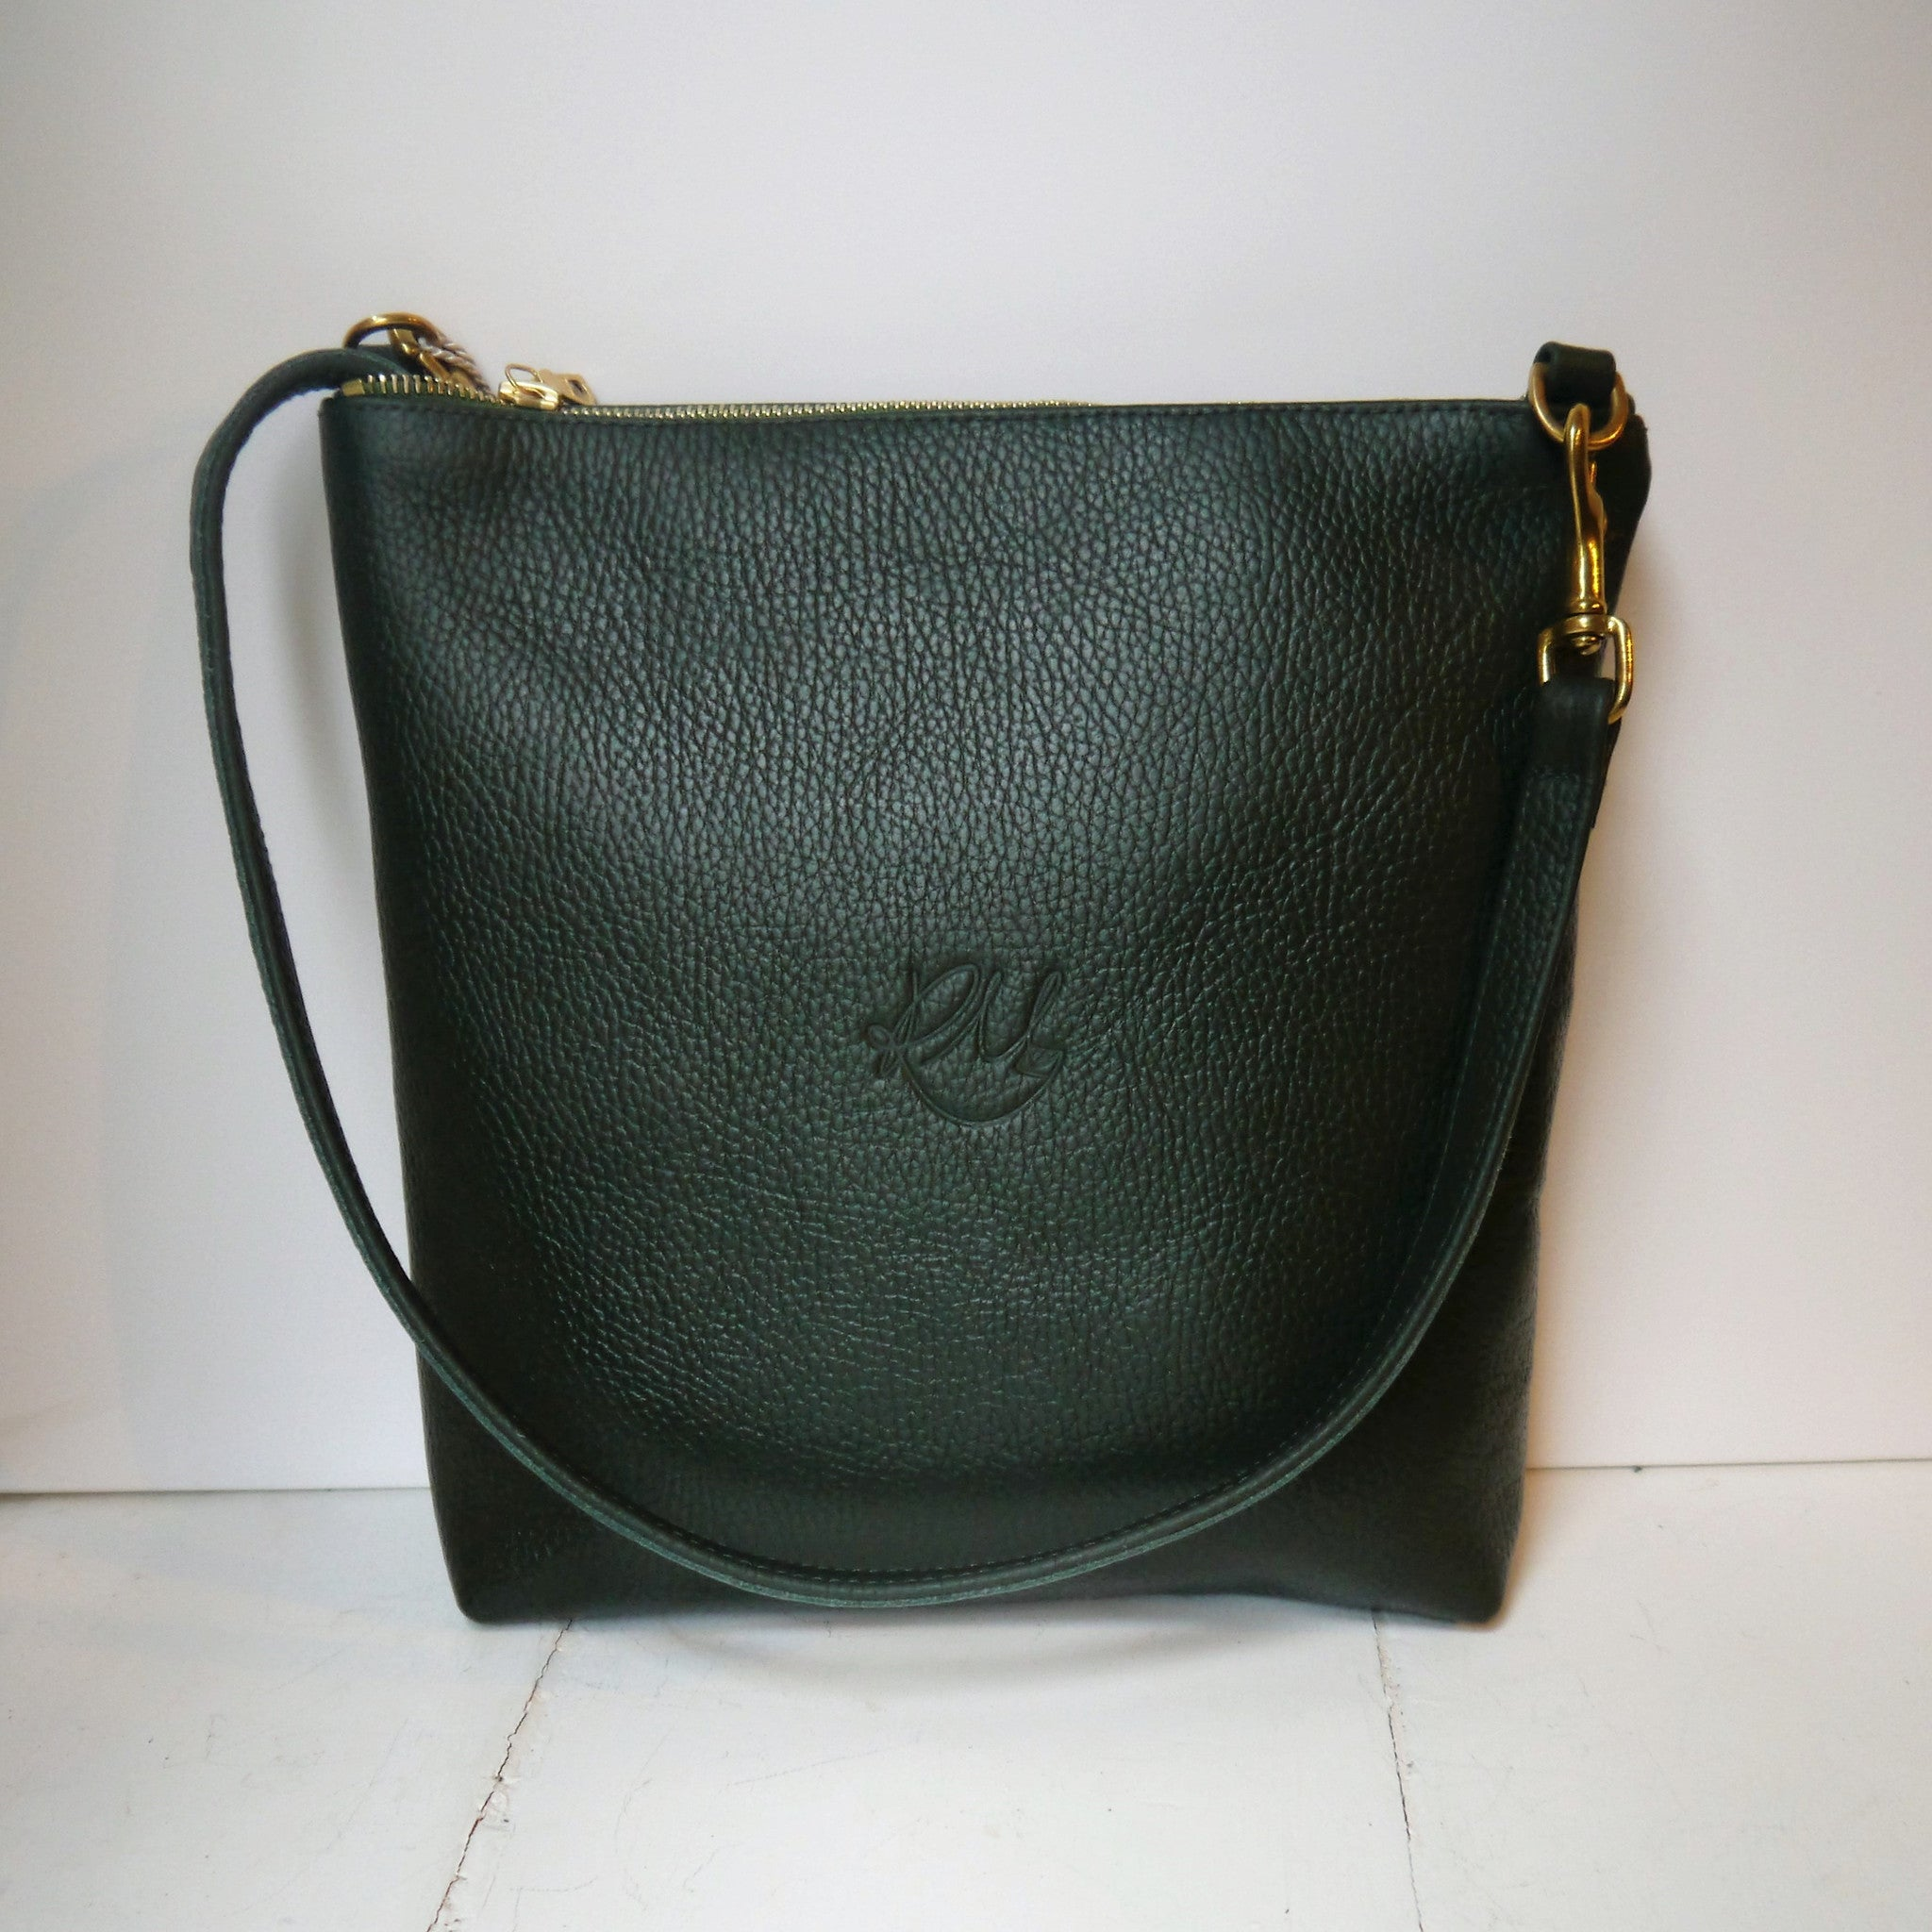 A/W'16 Willow cross body bag - Dark Green